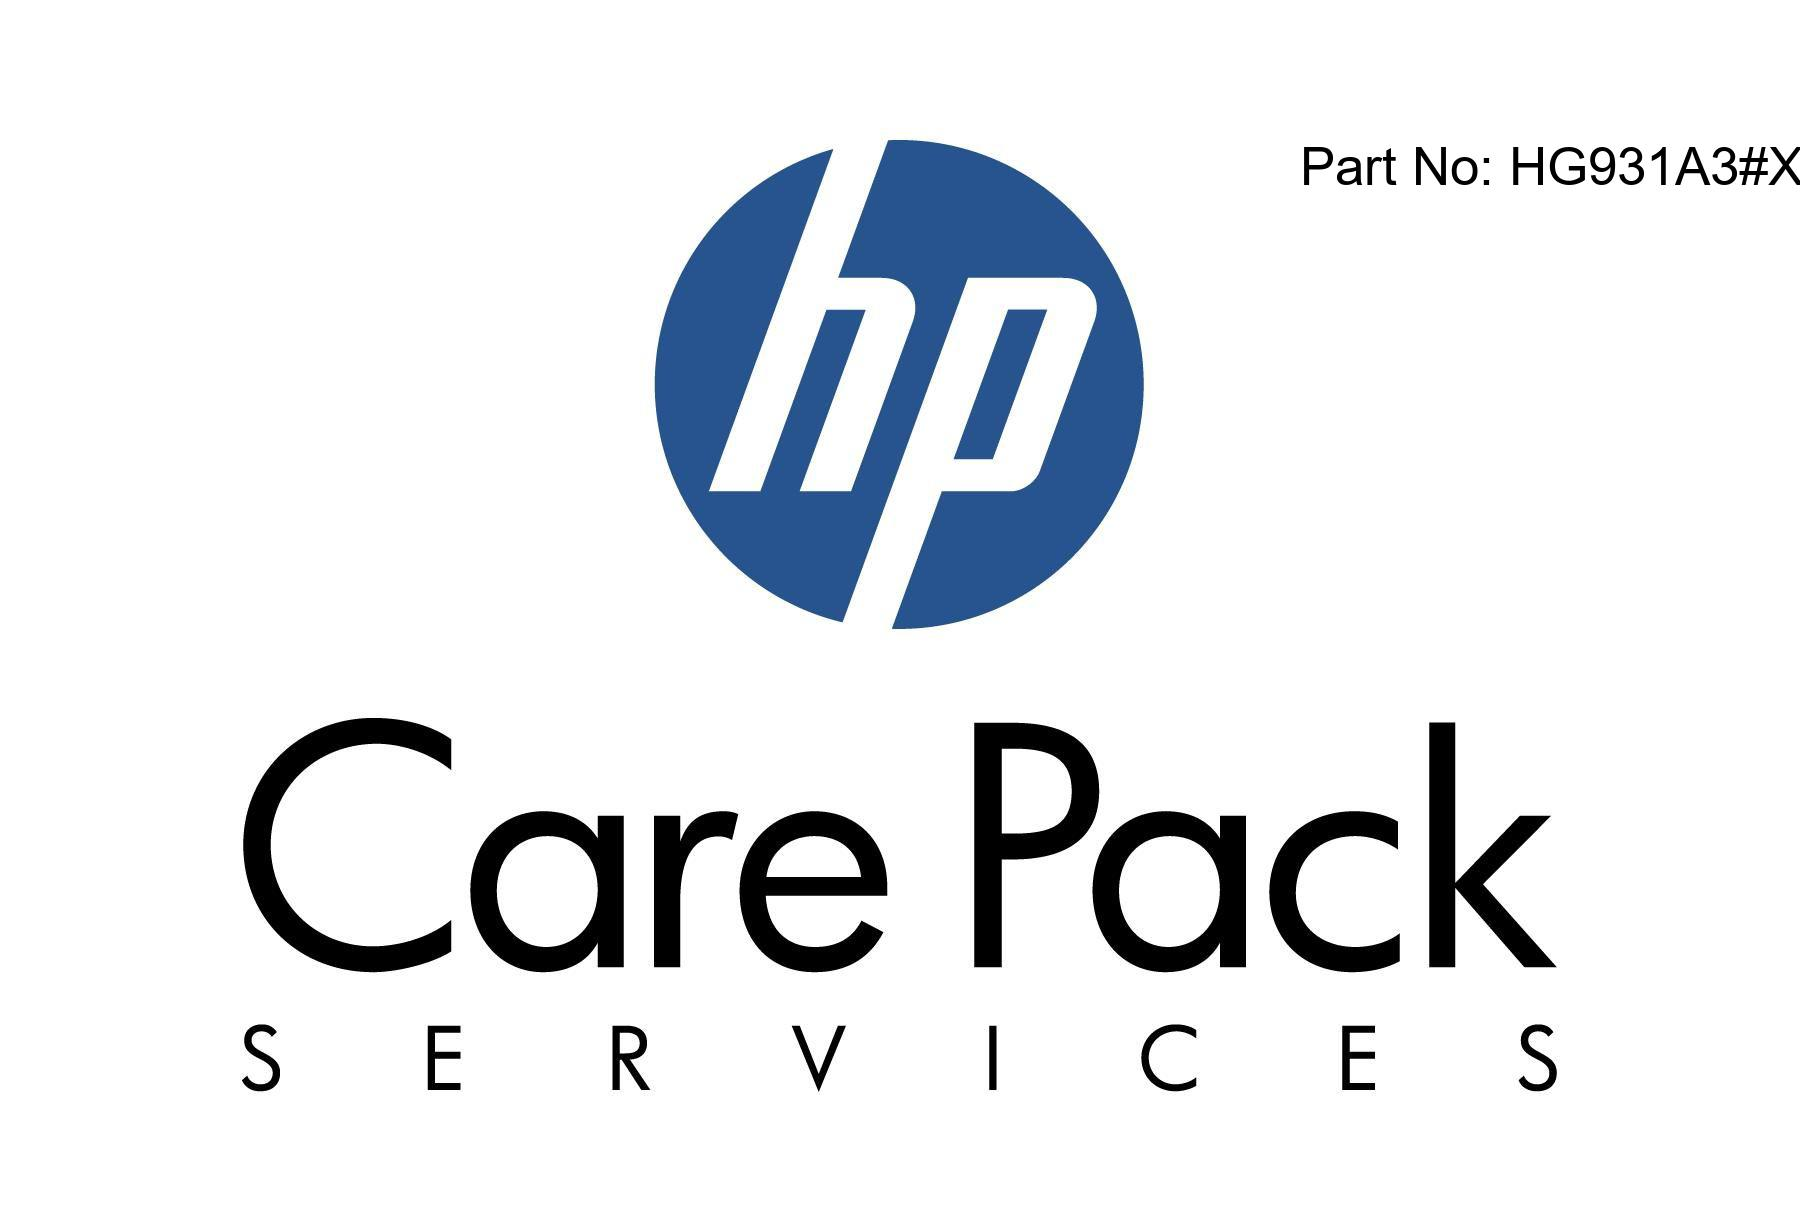 Proactive 24 with Defective Media Retention - Technical support - for HPE 3PAR 8450 Data Optimization Software Suite (v. 2) - 8 drives - phone consulting - 3 years - 24x7 - response time: 2 h